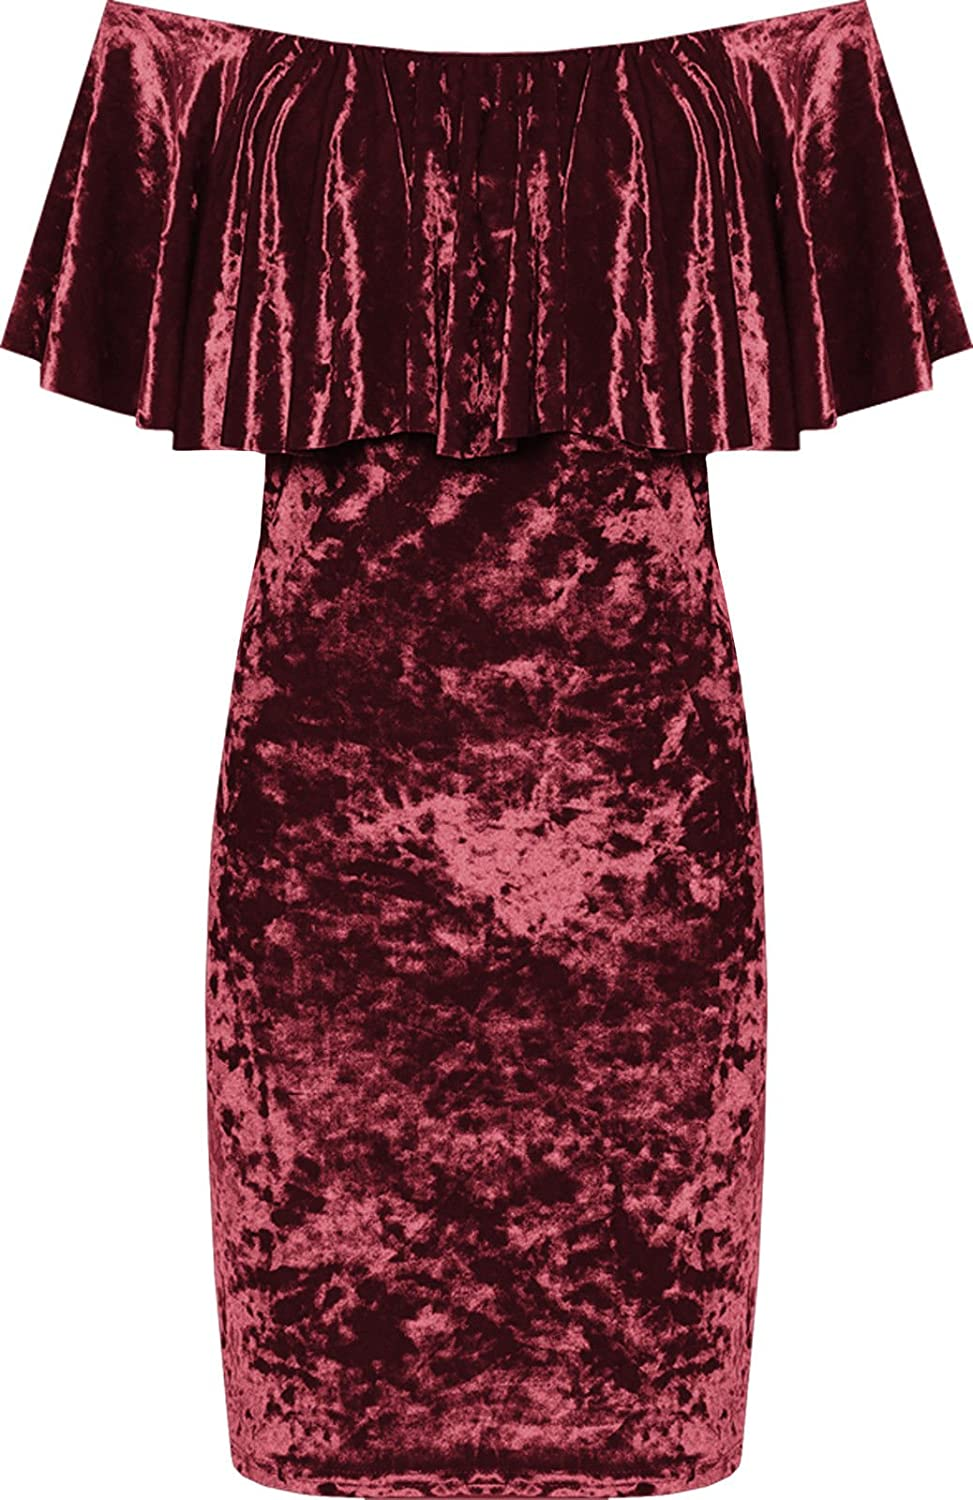 Funky Fashion Womens Crushed Velour Party Dress Tiered Off Shoulder Bardot Velvet Plus Size 14-28